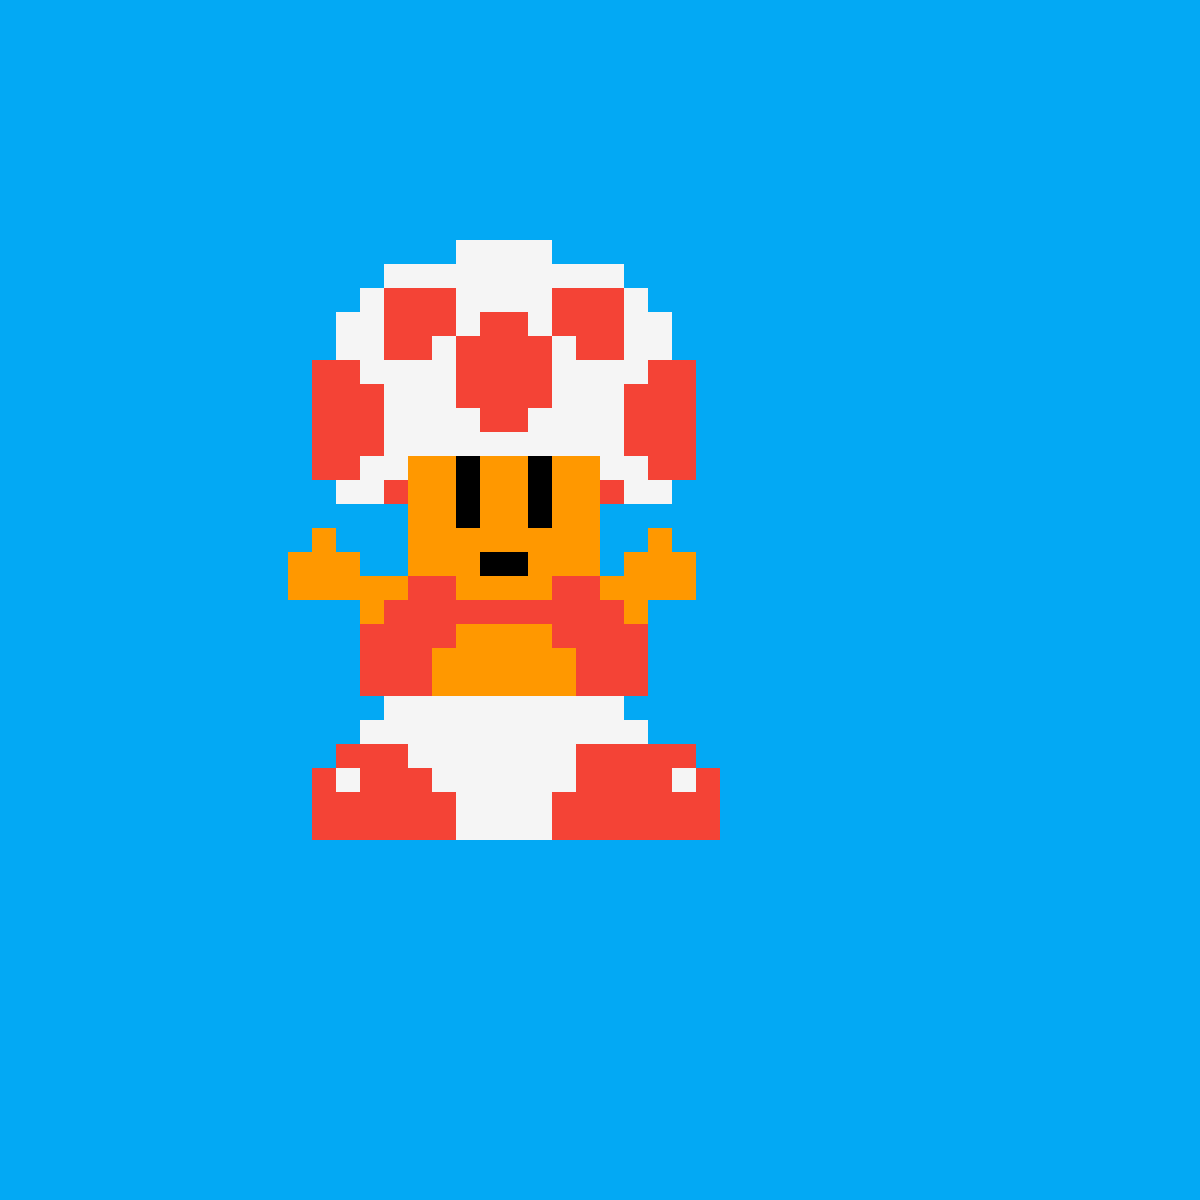 8 bit toad by obro1709